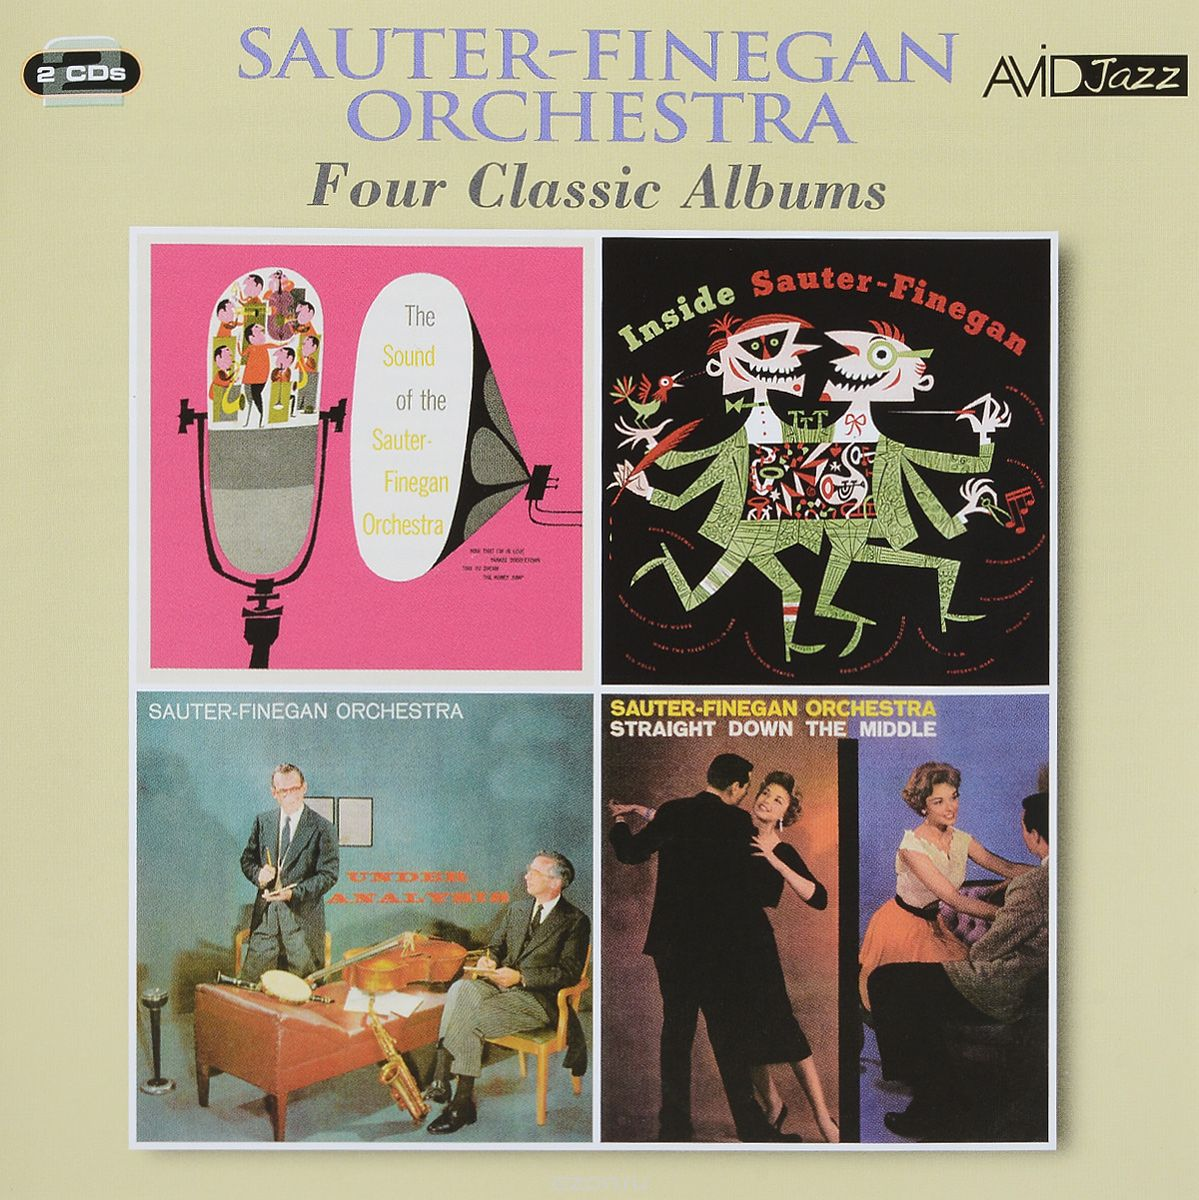 Avid Jazz. Sauter-Finegan Orchestra. Four Classic Albums (2 CD)